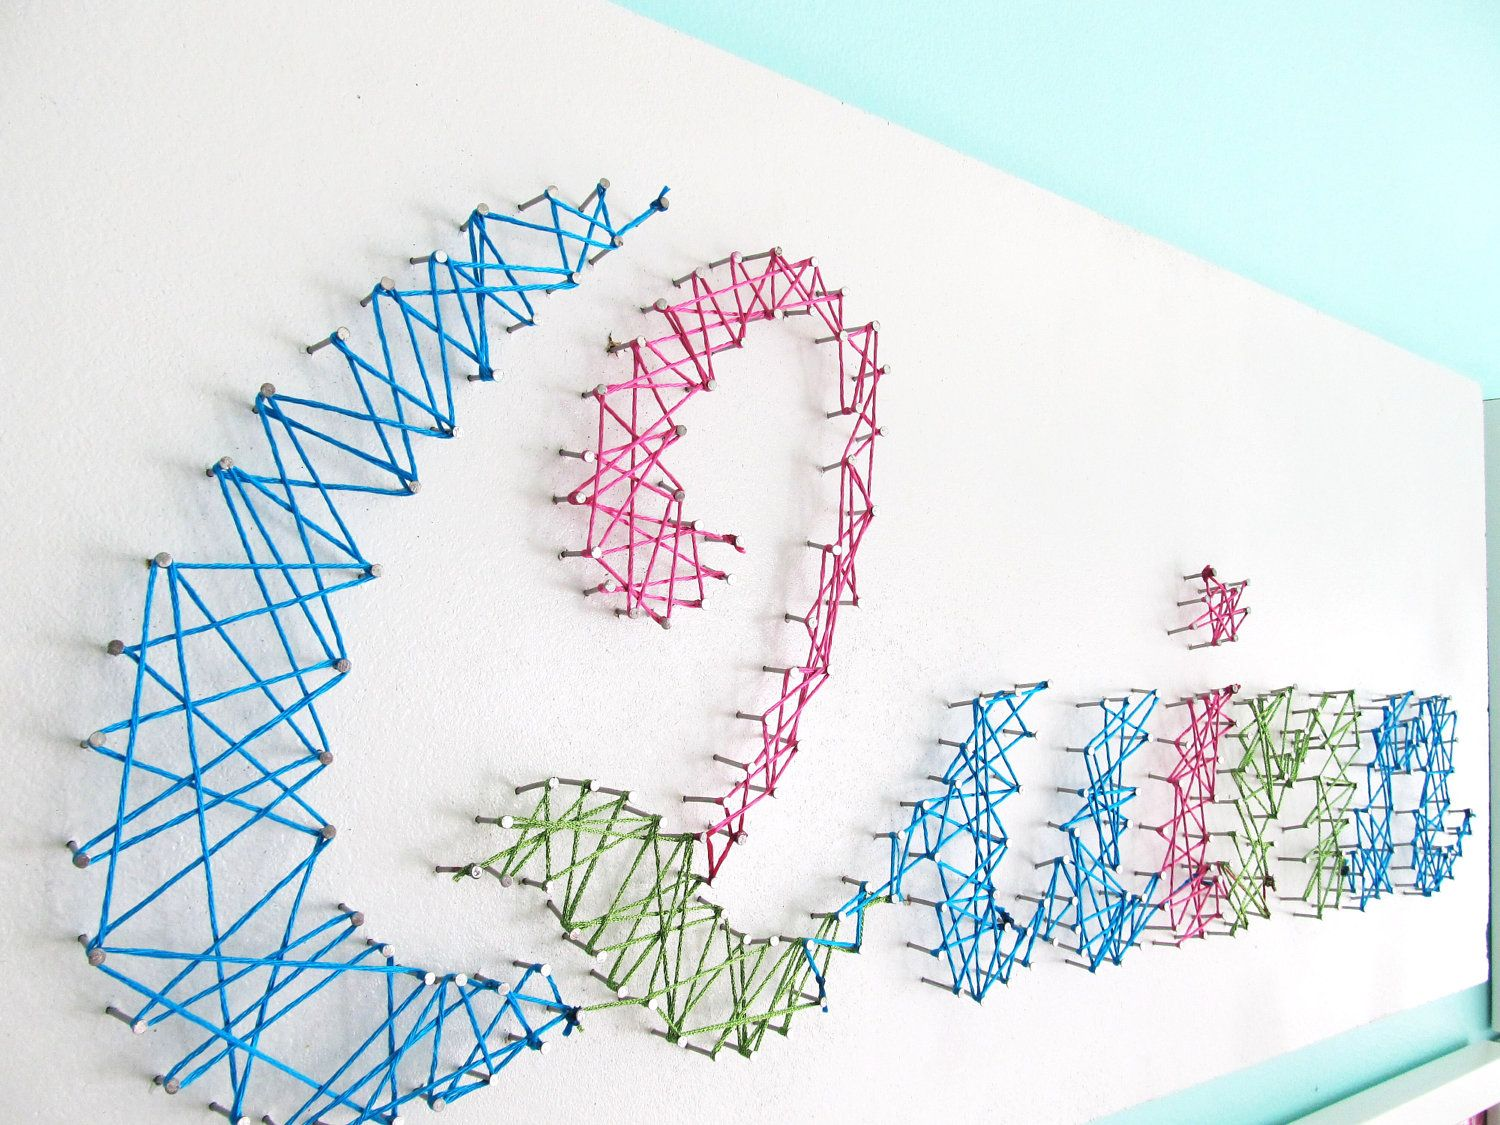 Personalized Name Wall Art string art / baby name art / personalized string art / custom name